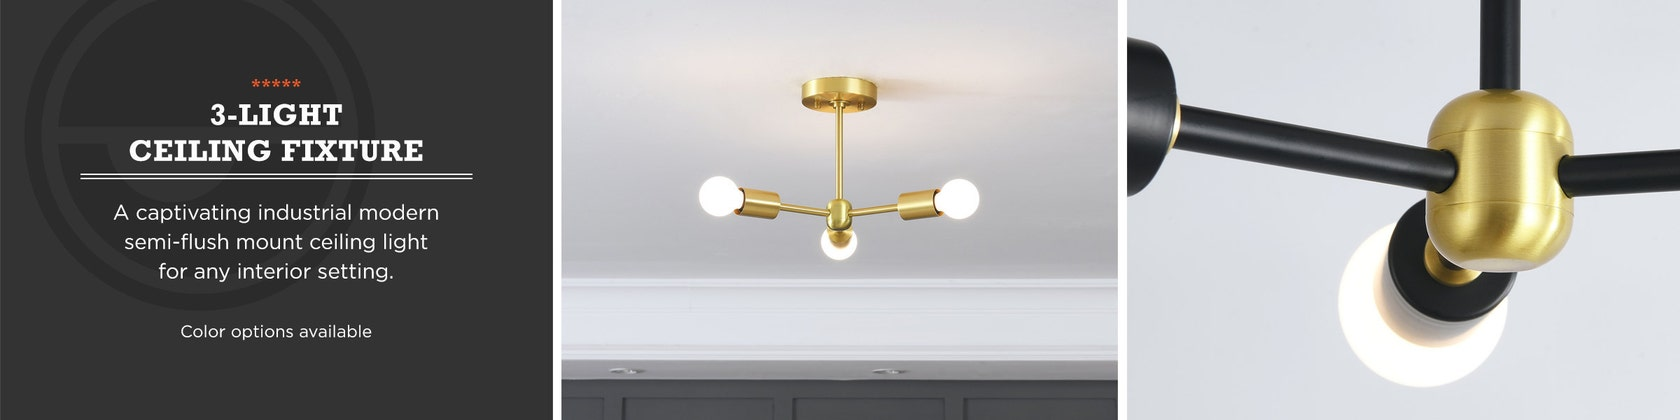 BONNIE Mid Century Industrial Ceiling Flush Mount 1 Light Gold Wall Sconce With Glass Bowl Shade For Modern Bathroom Vanity /& Hallway